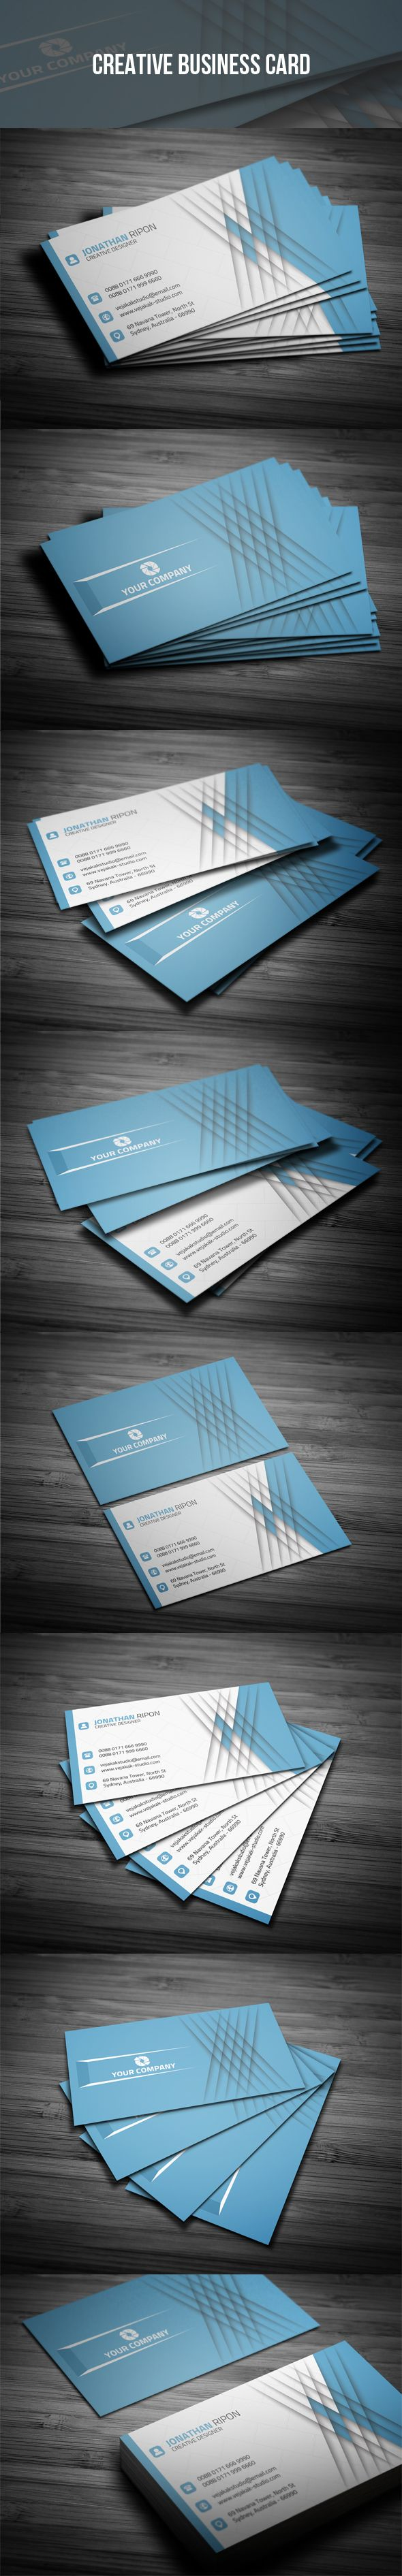 77 best Business Card Designs images on Pinterest